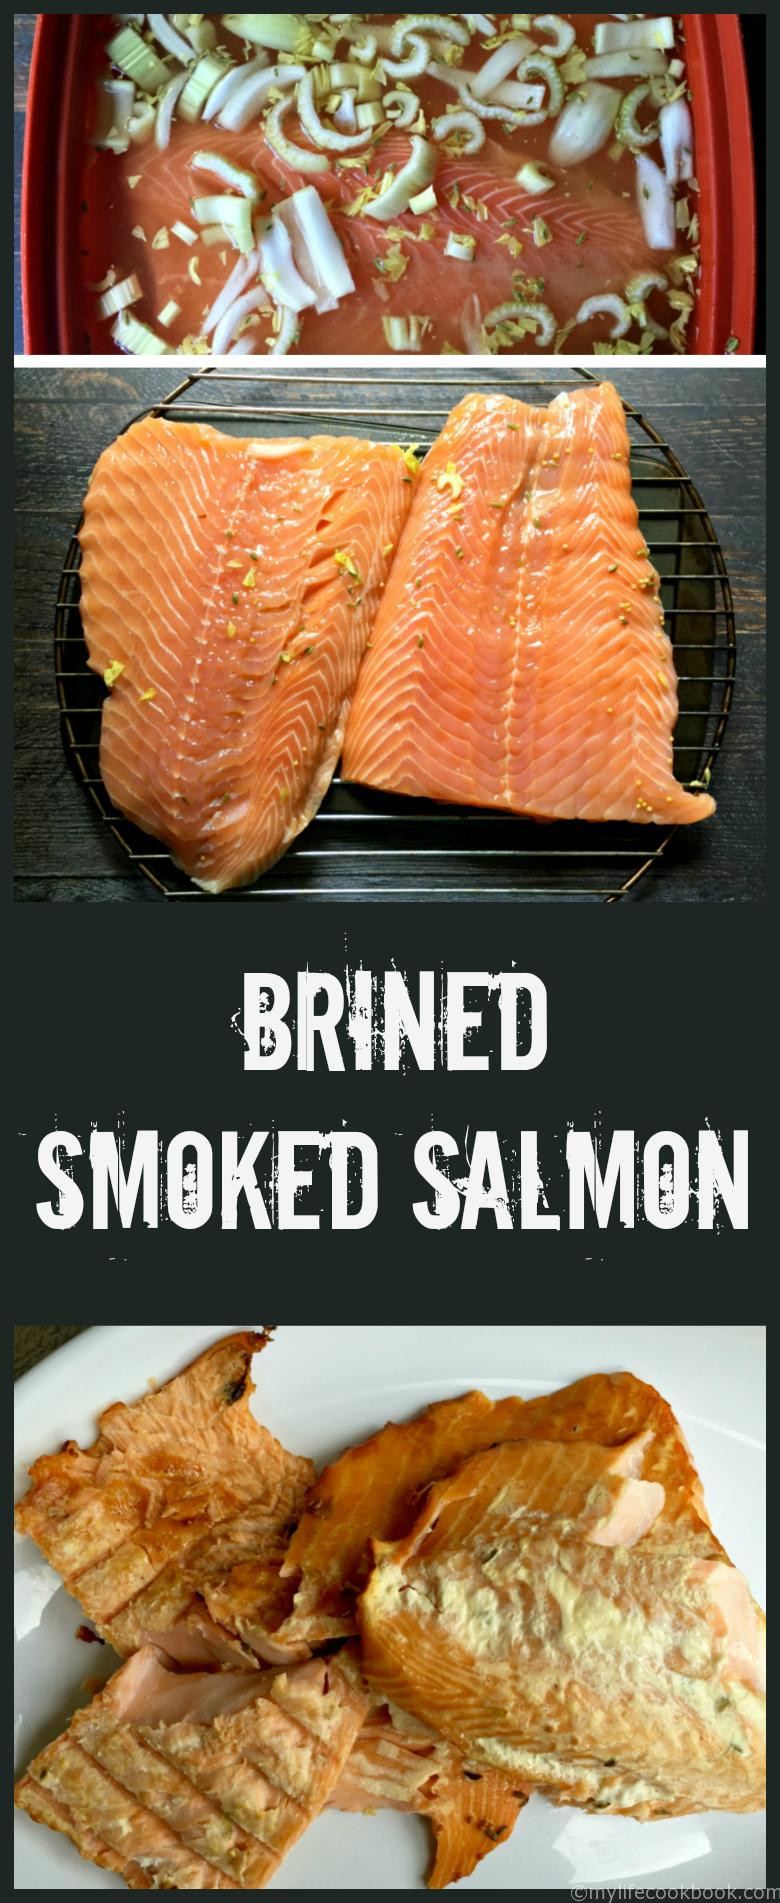 Once you have a taste of this smoked salmon you'll never want to eat it any other way.